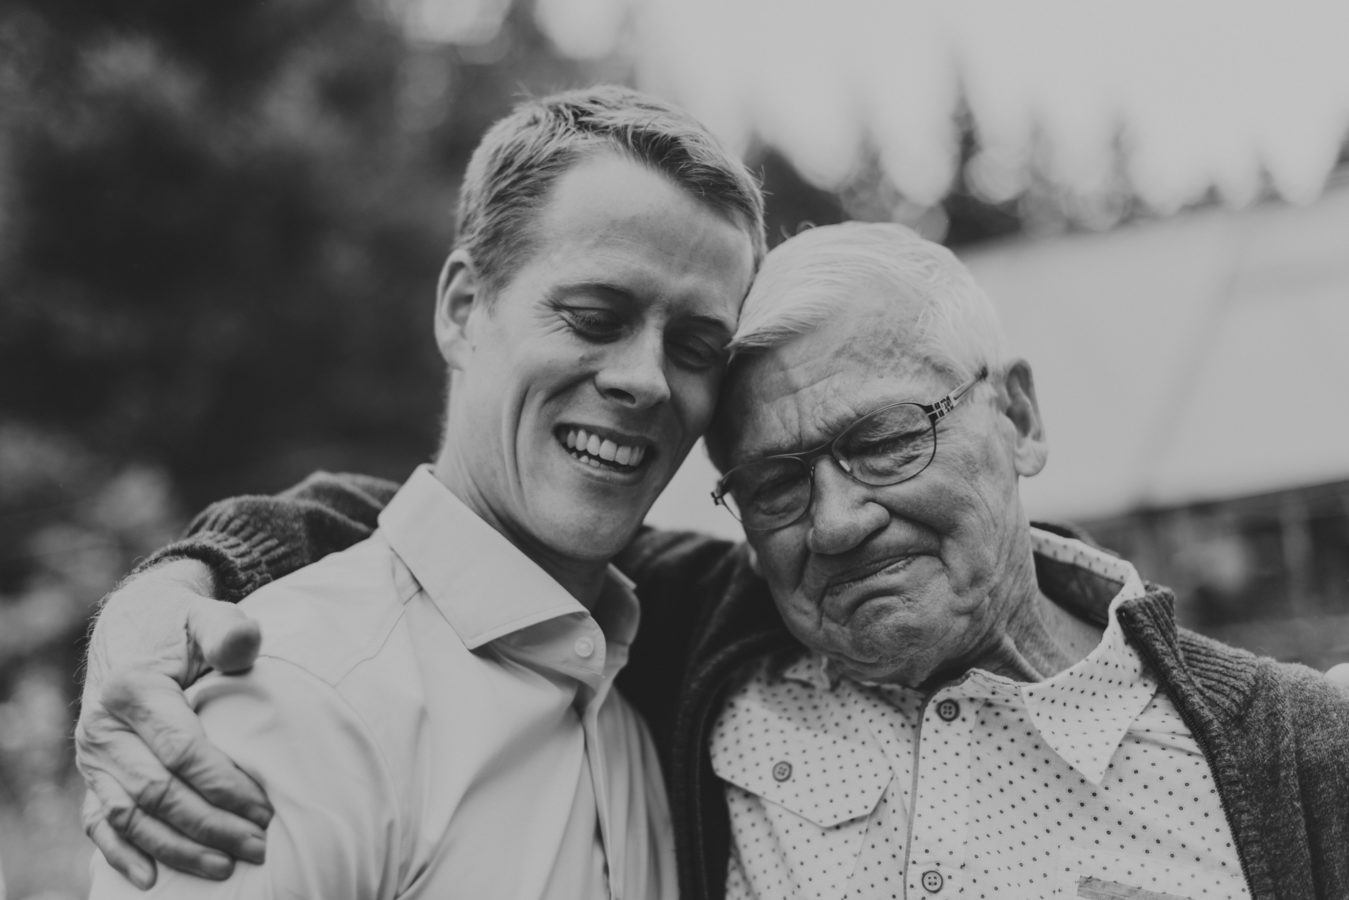 grandfather emotionally hugging his grandson on his wedding day